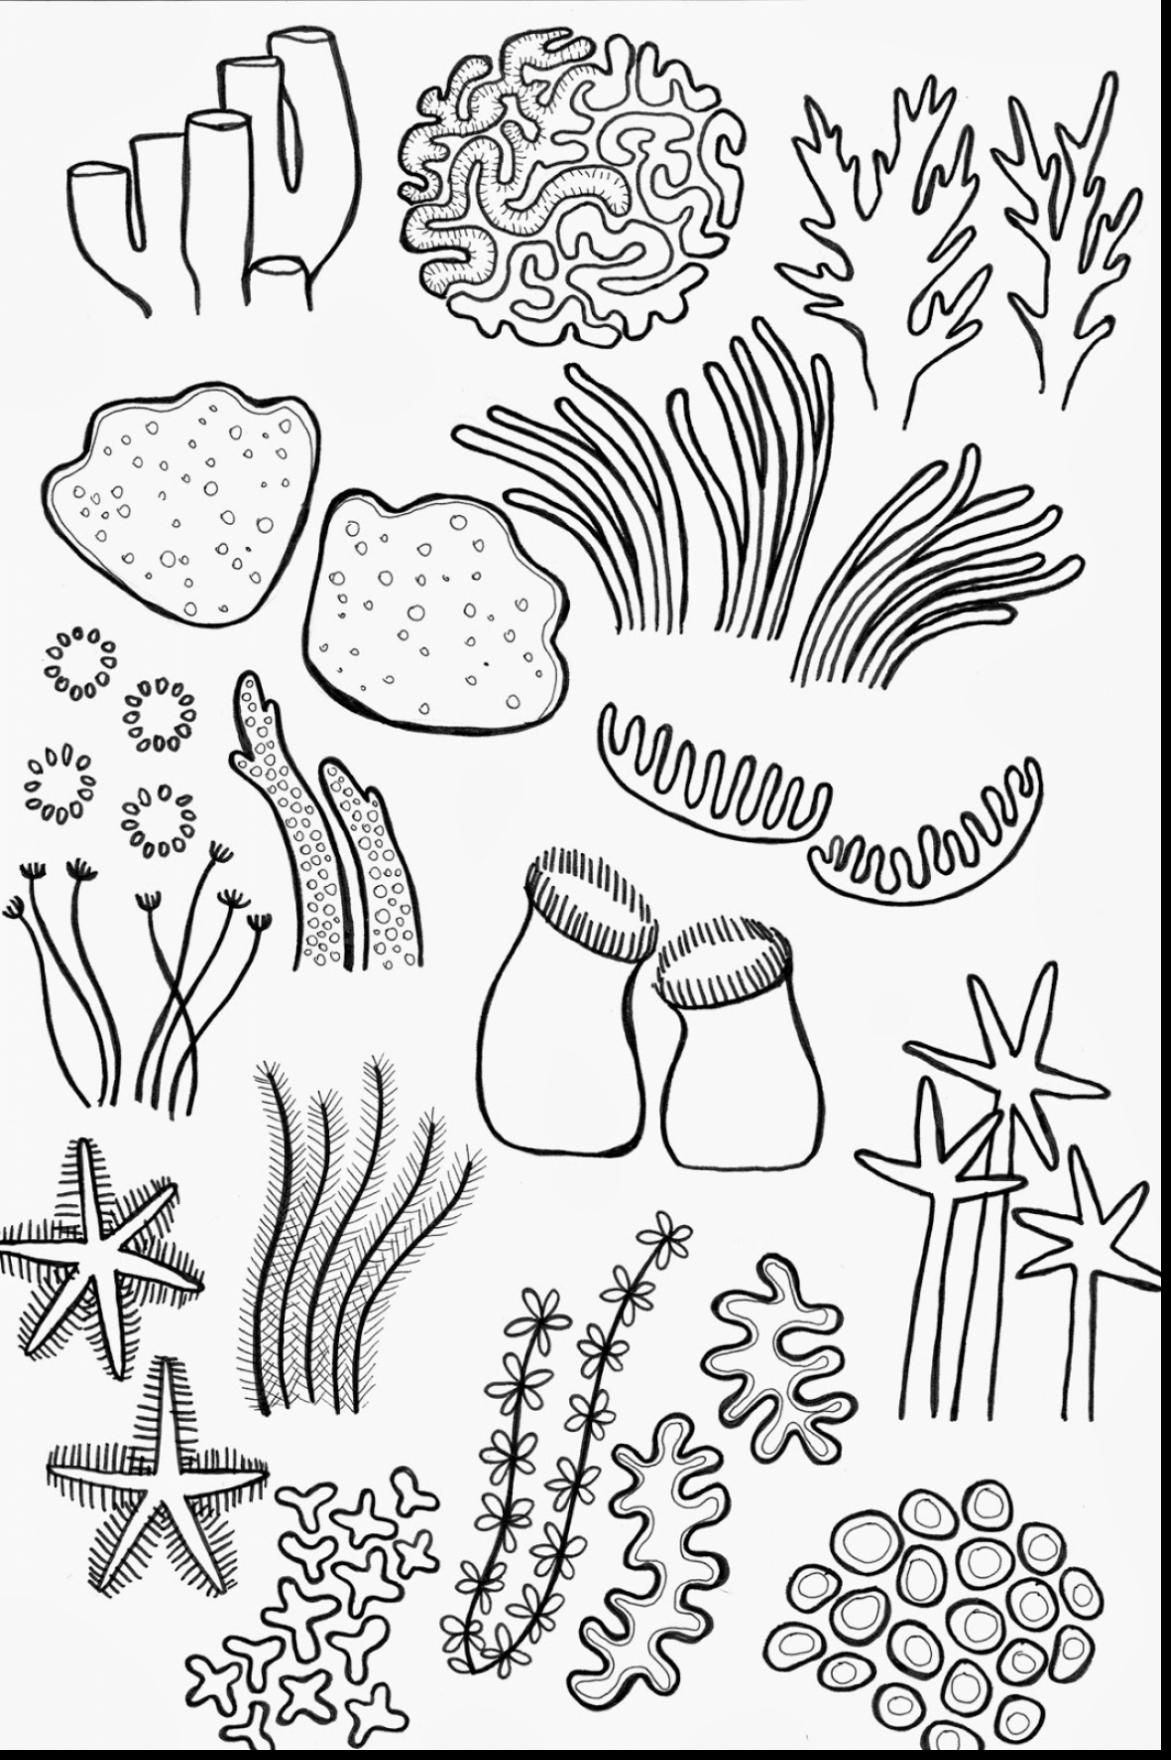 Drawn Coral Reef Coloring Page 2 Coral Reef Art Coral Drawing